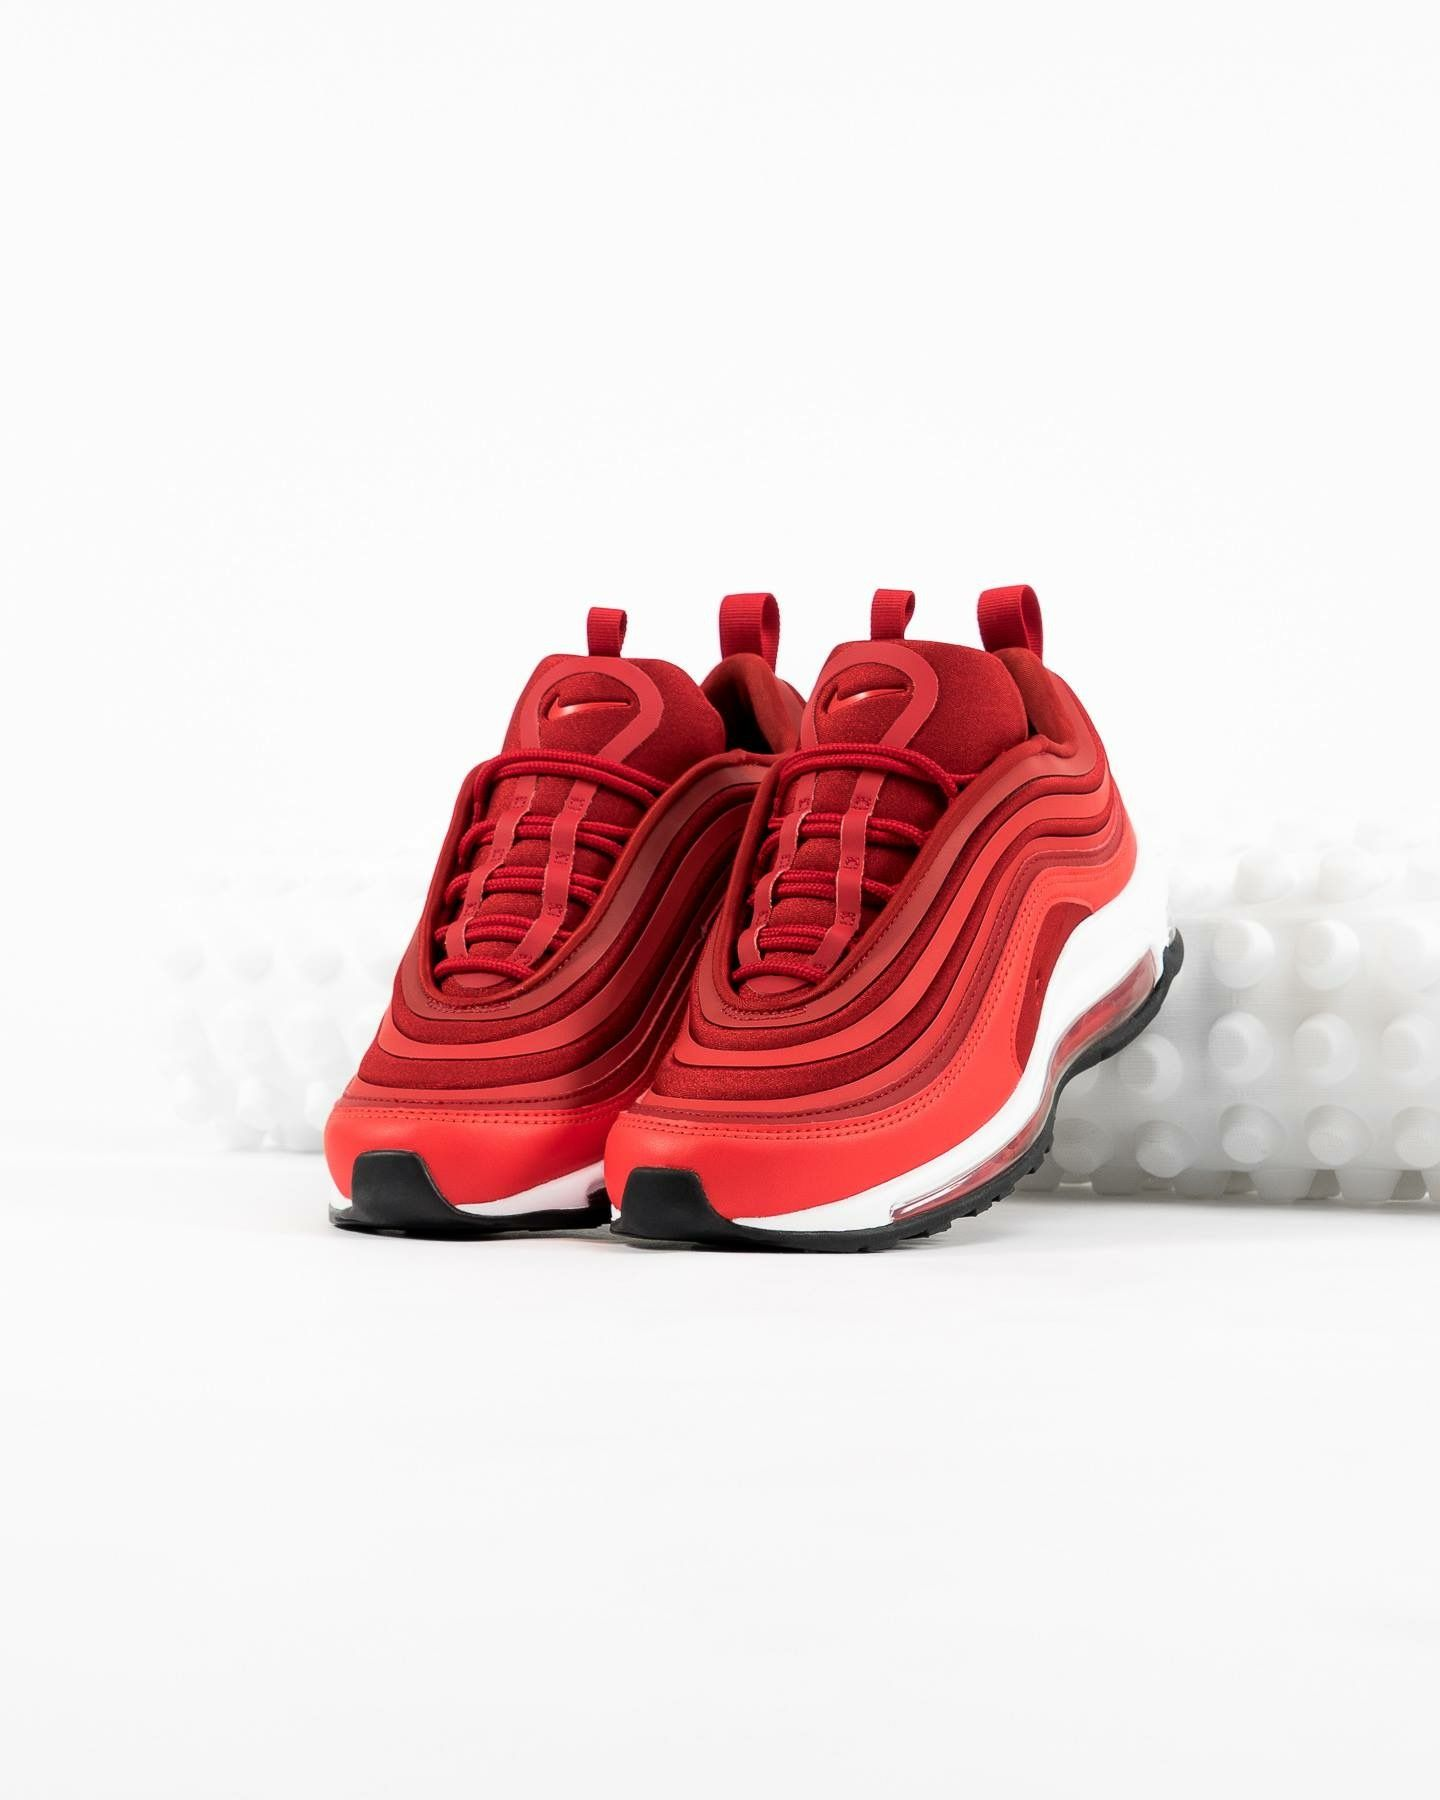 Nike Air Max 97 Ultra: Red Nikes i 2019Røde nike-sko Nikes i 2019 Red nike shoes